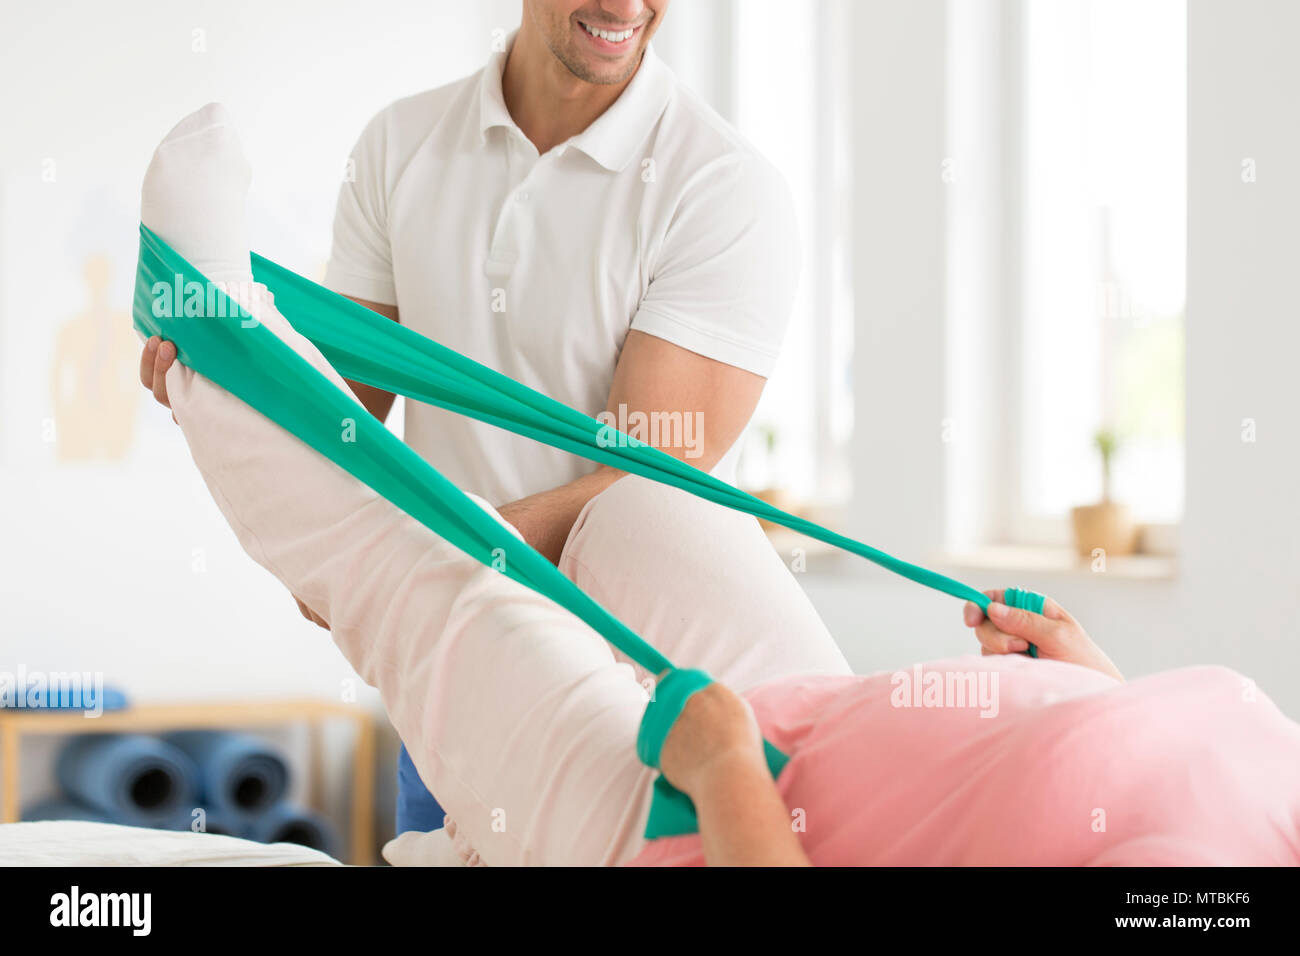 Professional physiotherapist performing isometric pnf exercises with his elderly patient in a private office using a teal scarf - Stock Image